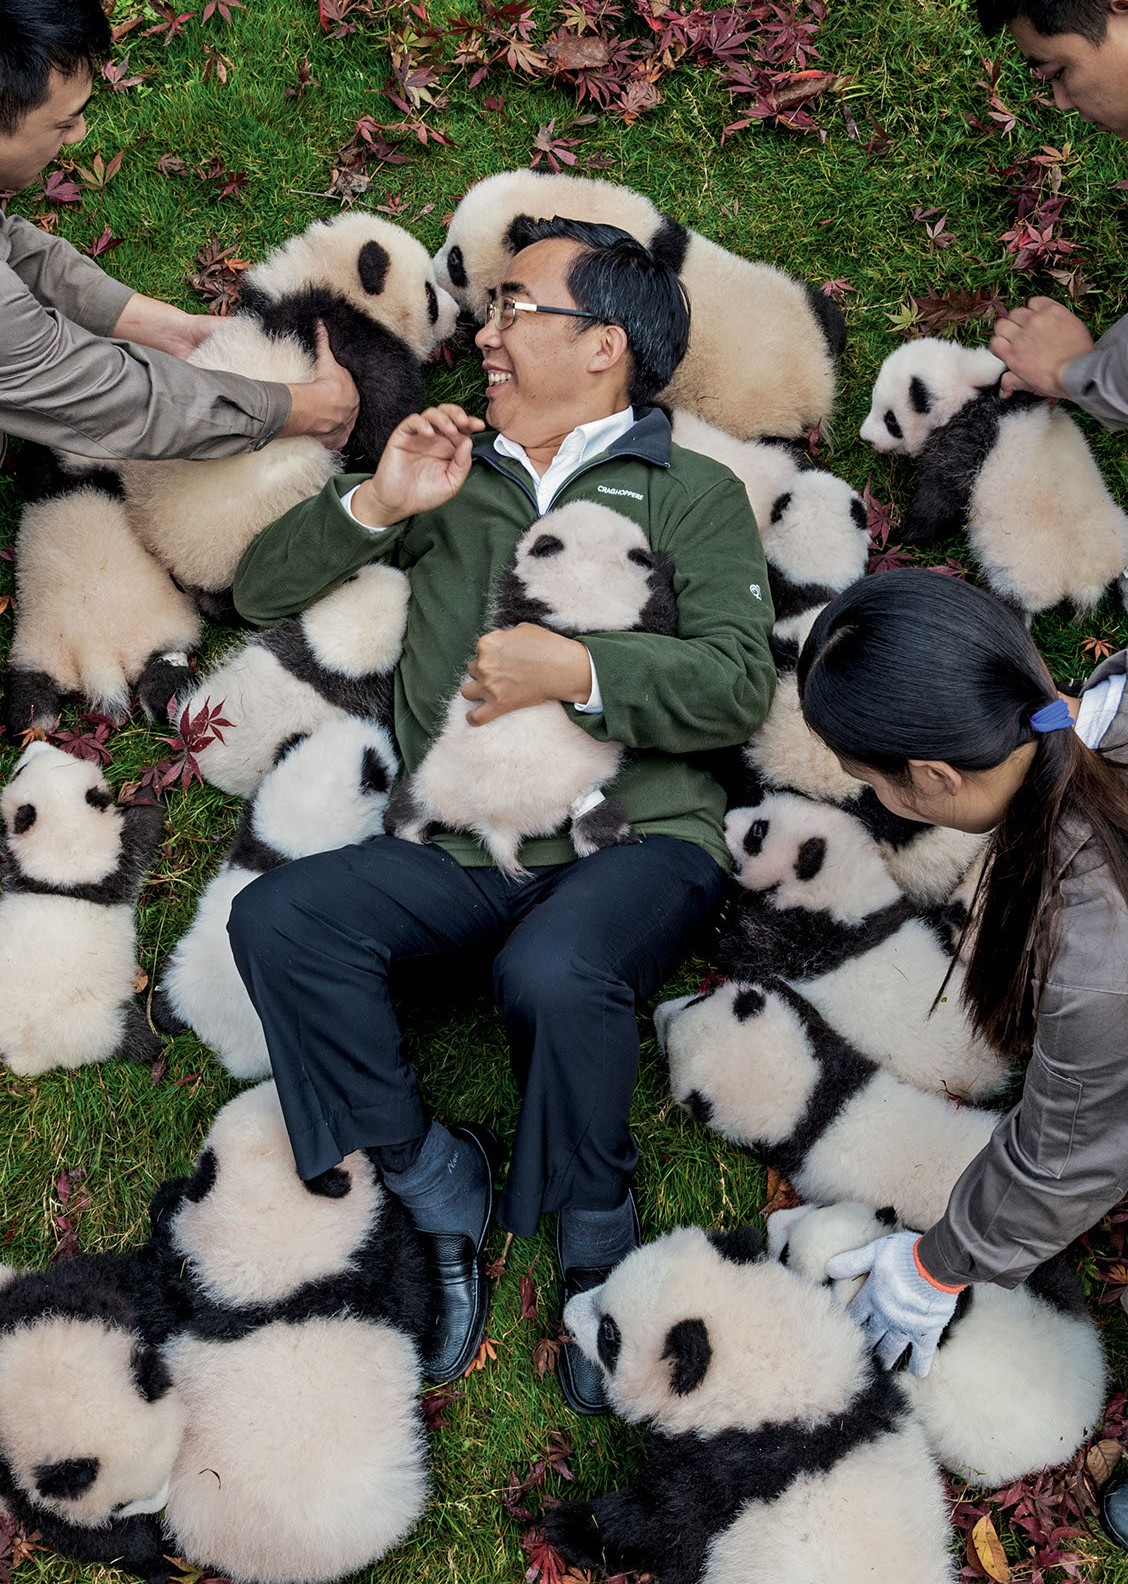 Preparing Pandas In Captivity For Their New Life In The Wild